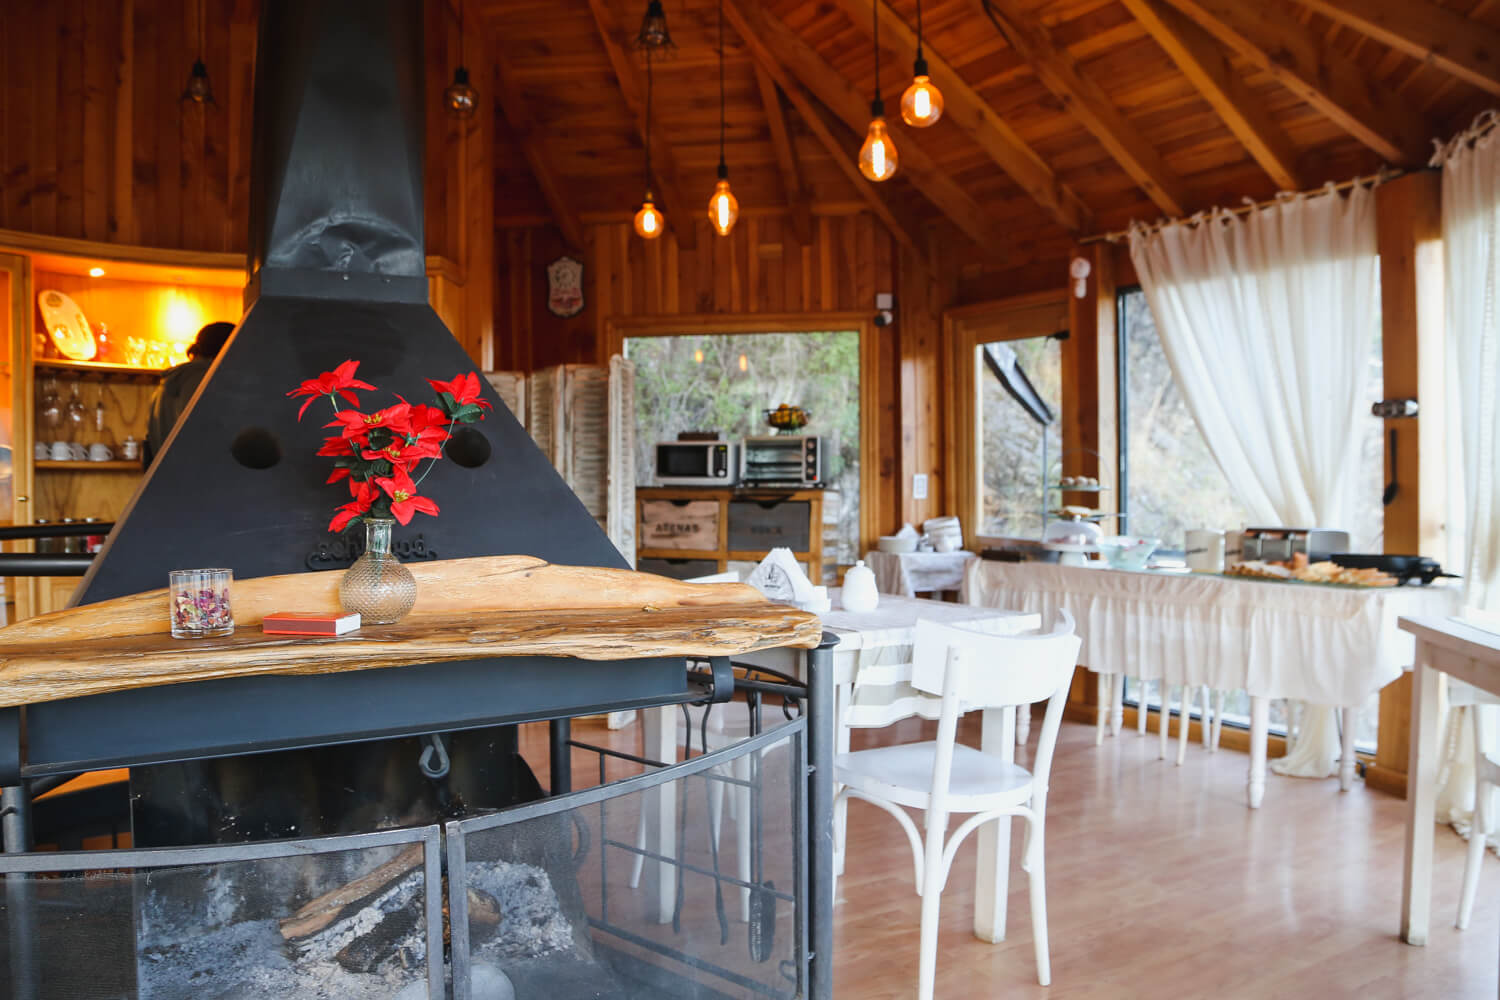 A fireplace and tables and chairs inside a wooden room at the best hotel in San Martin de los Andes Argentina